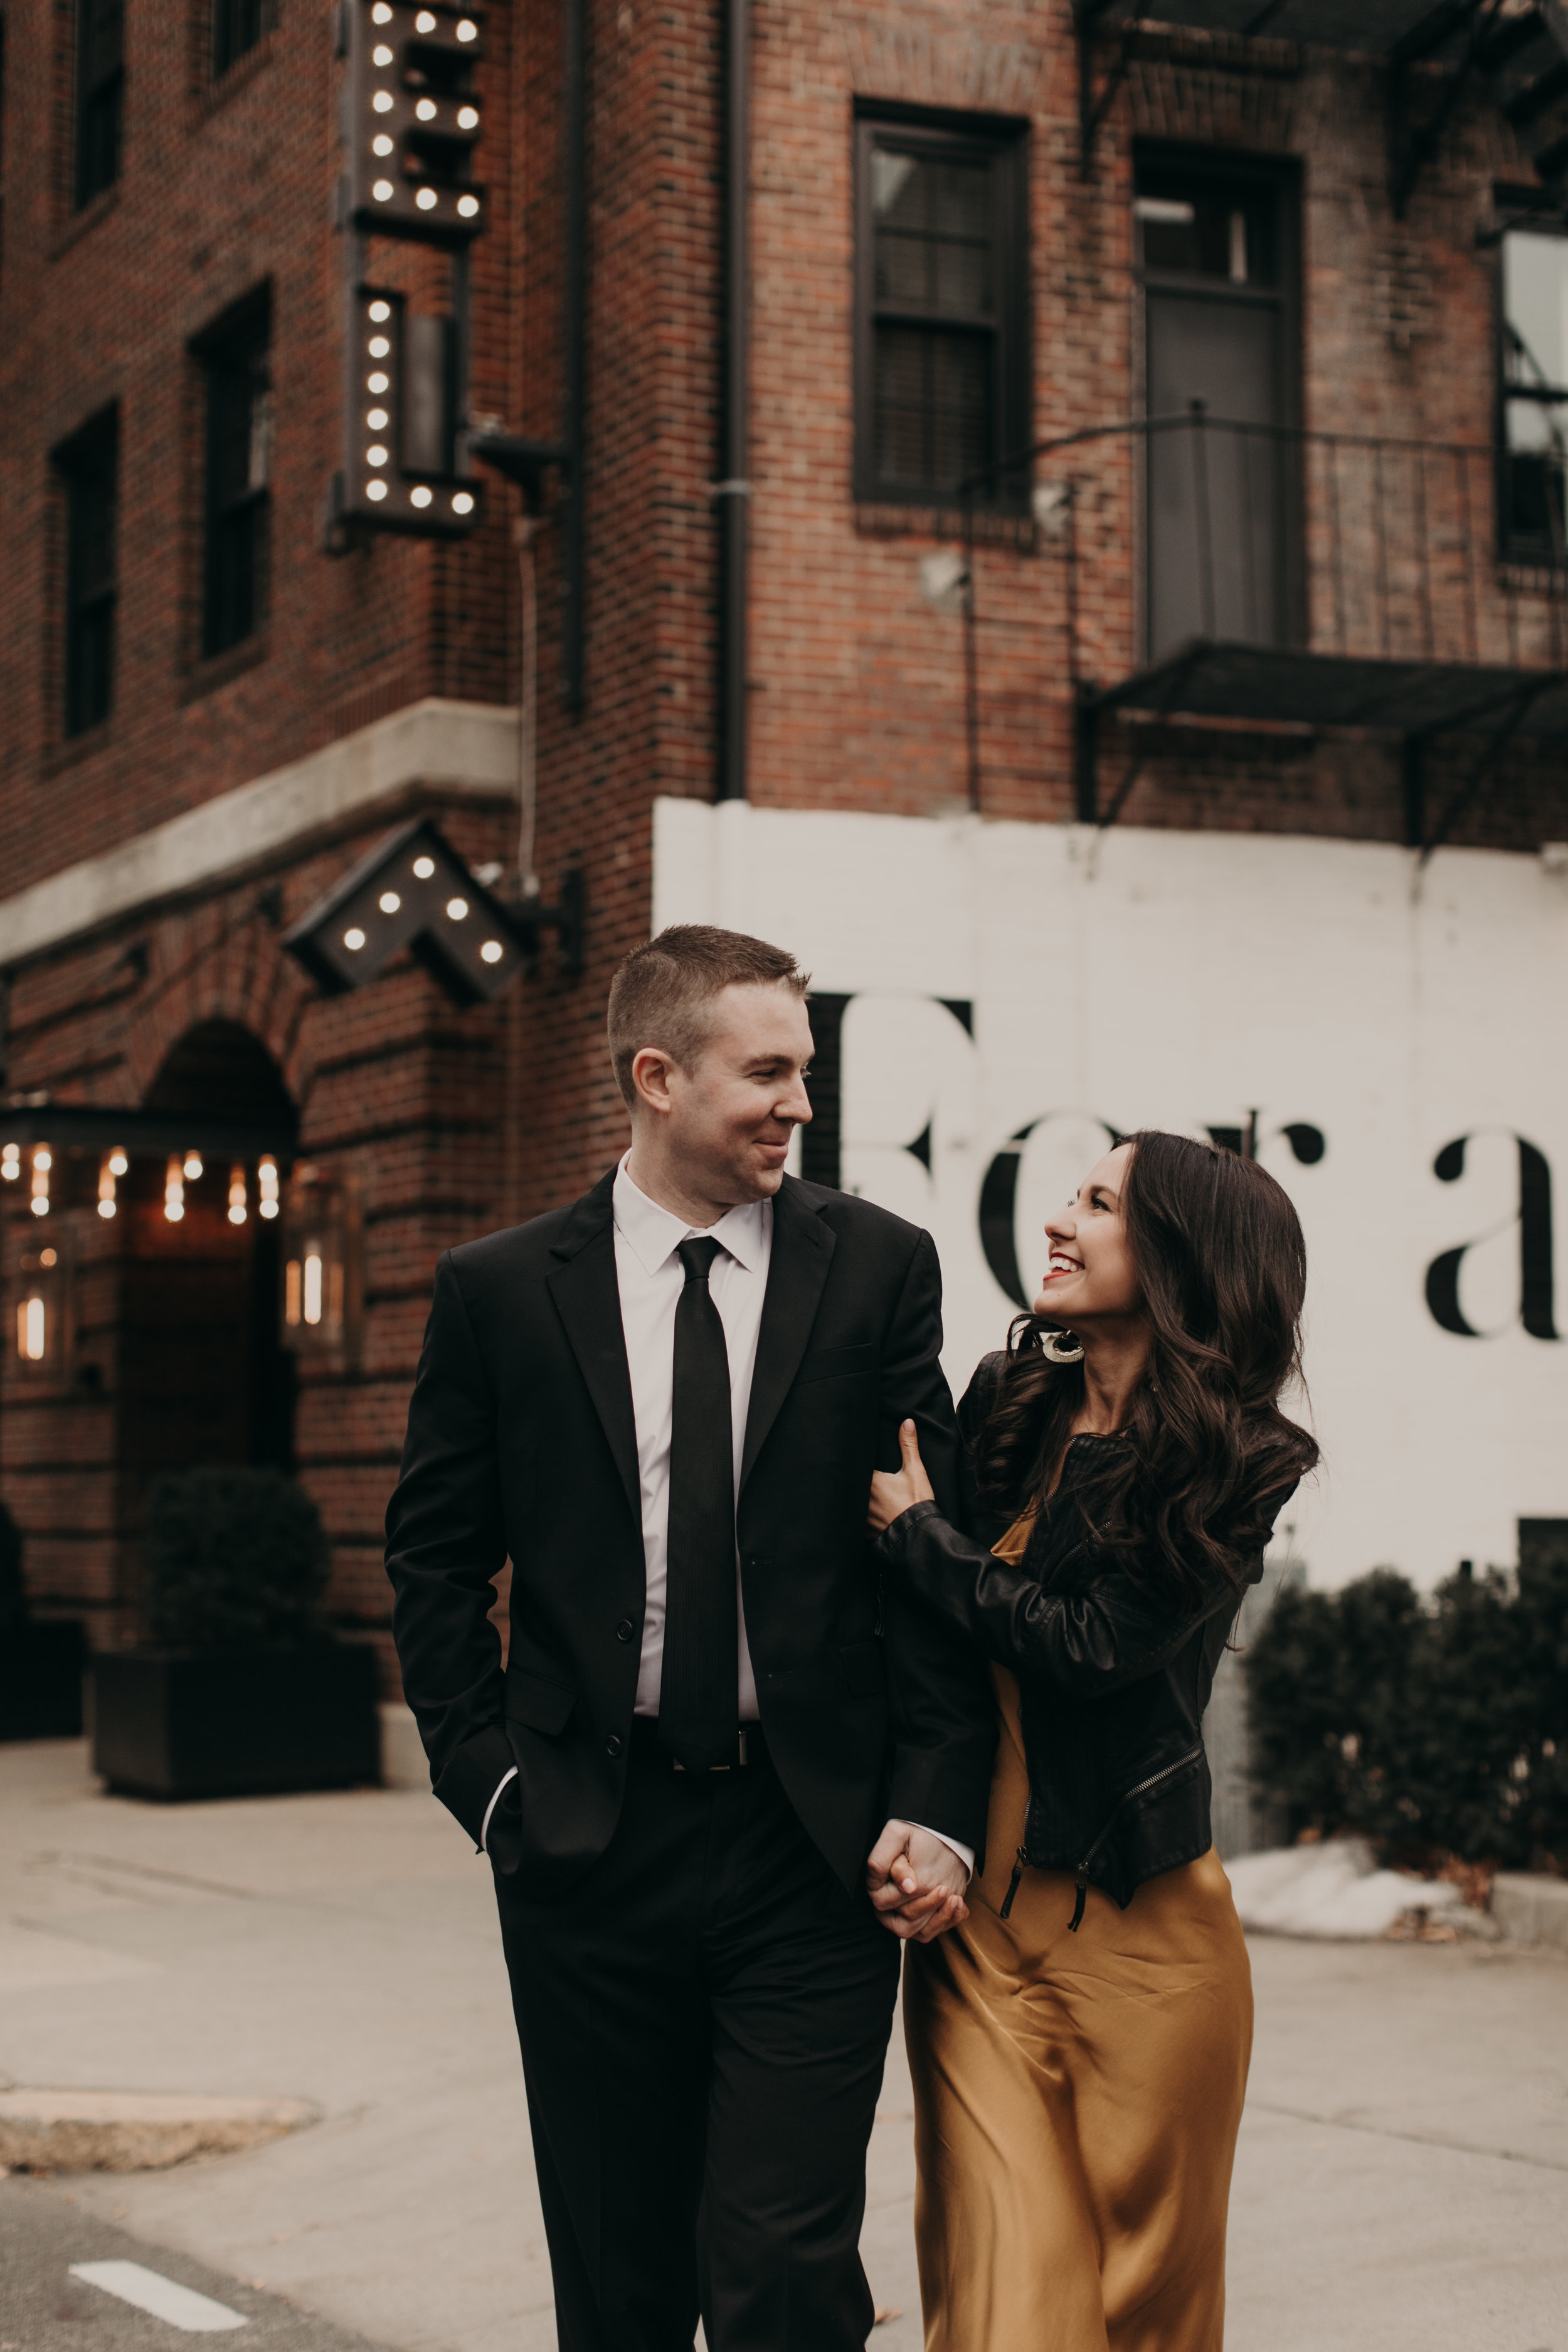 Chris_Marissa_Downtown_Providence_Rhode_Island_Engagement_Session_003.jpeg